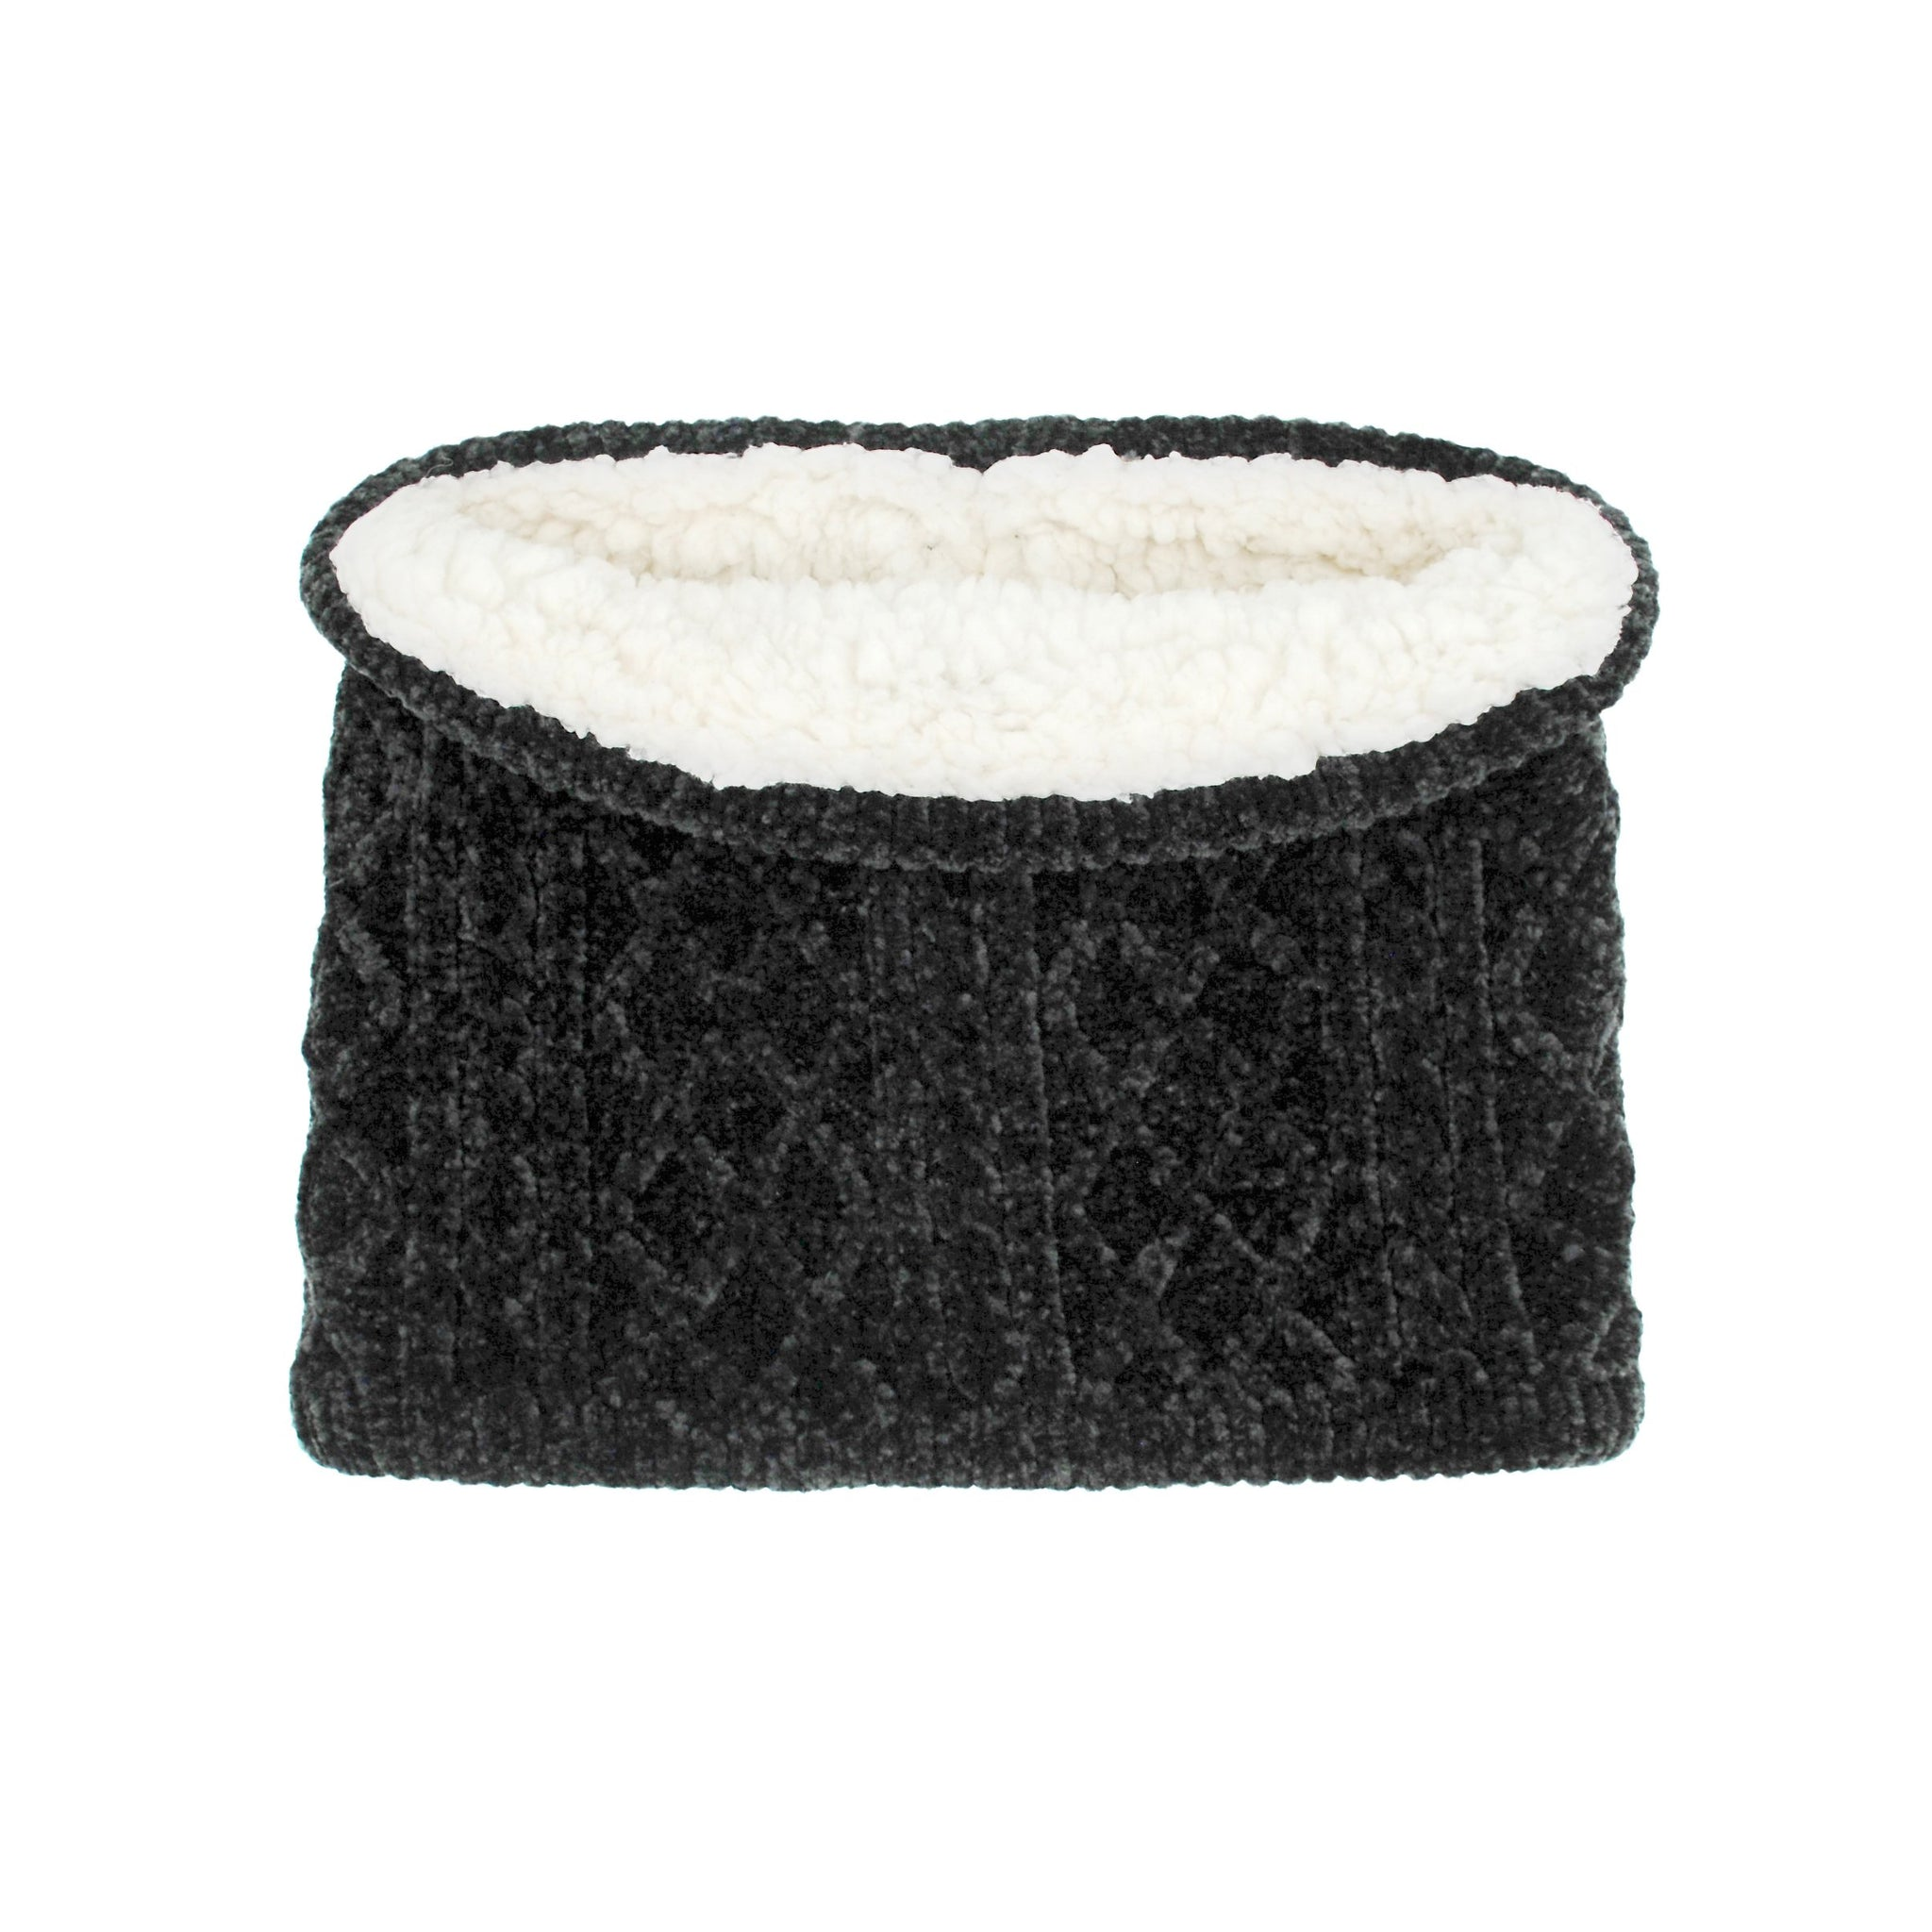 Chenille Knit Snood Gaiter Neck Warmer | Black